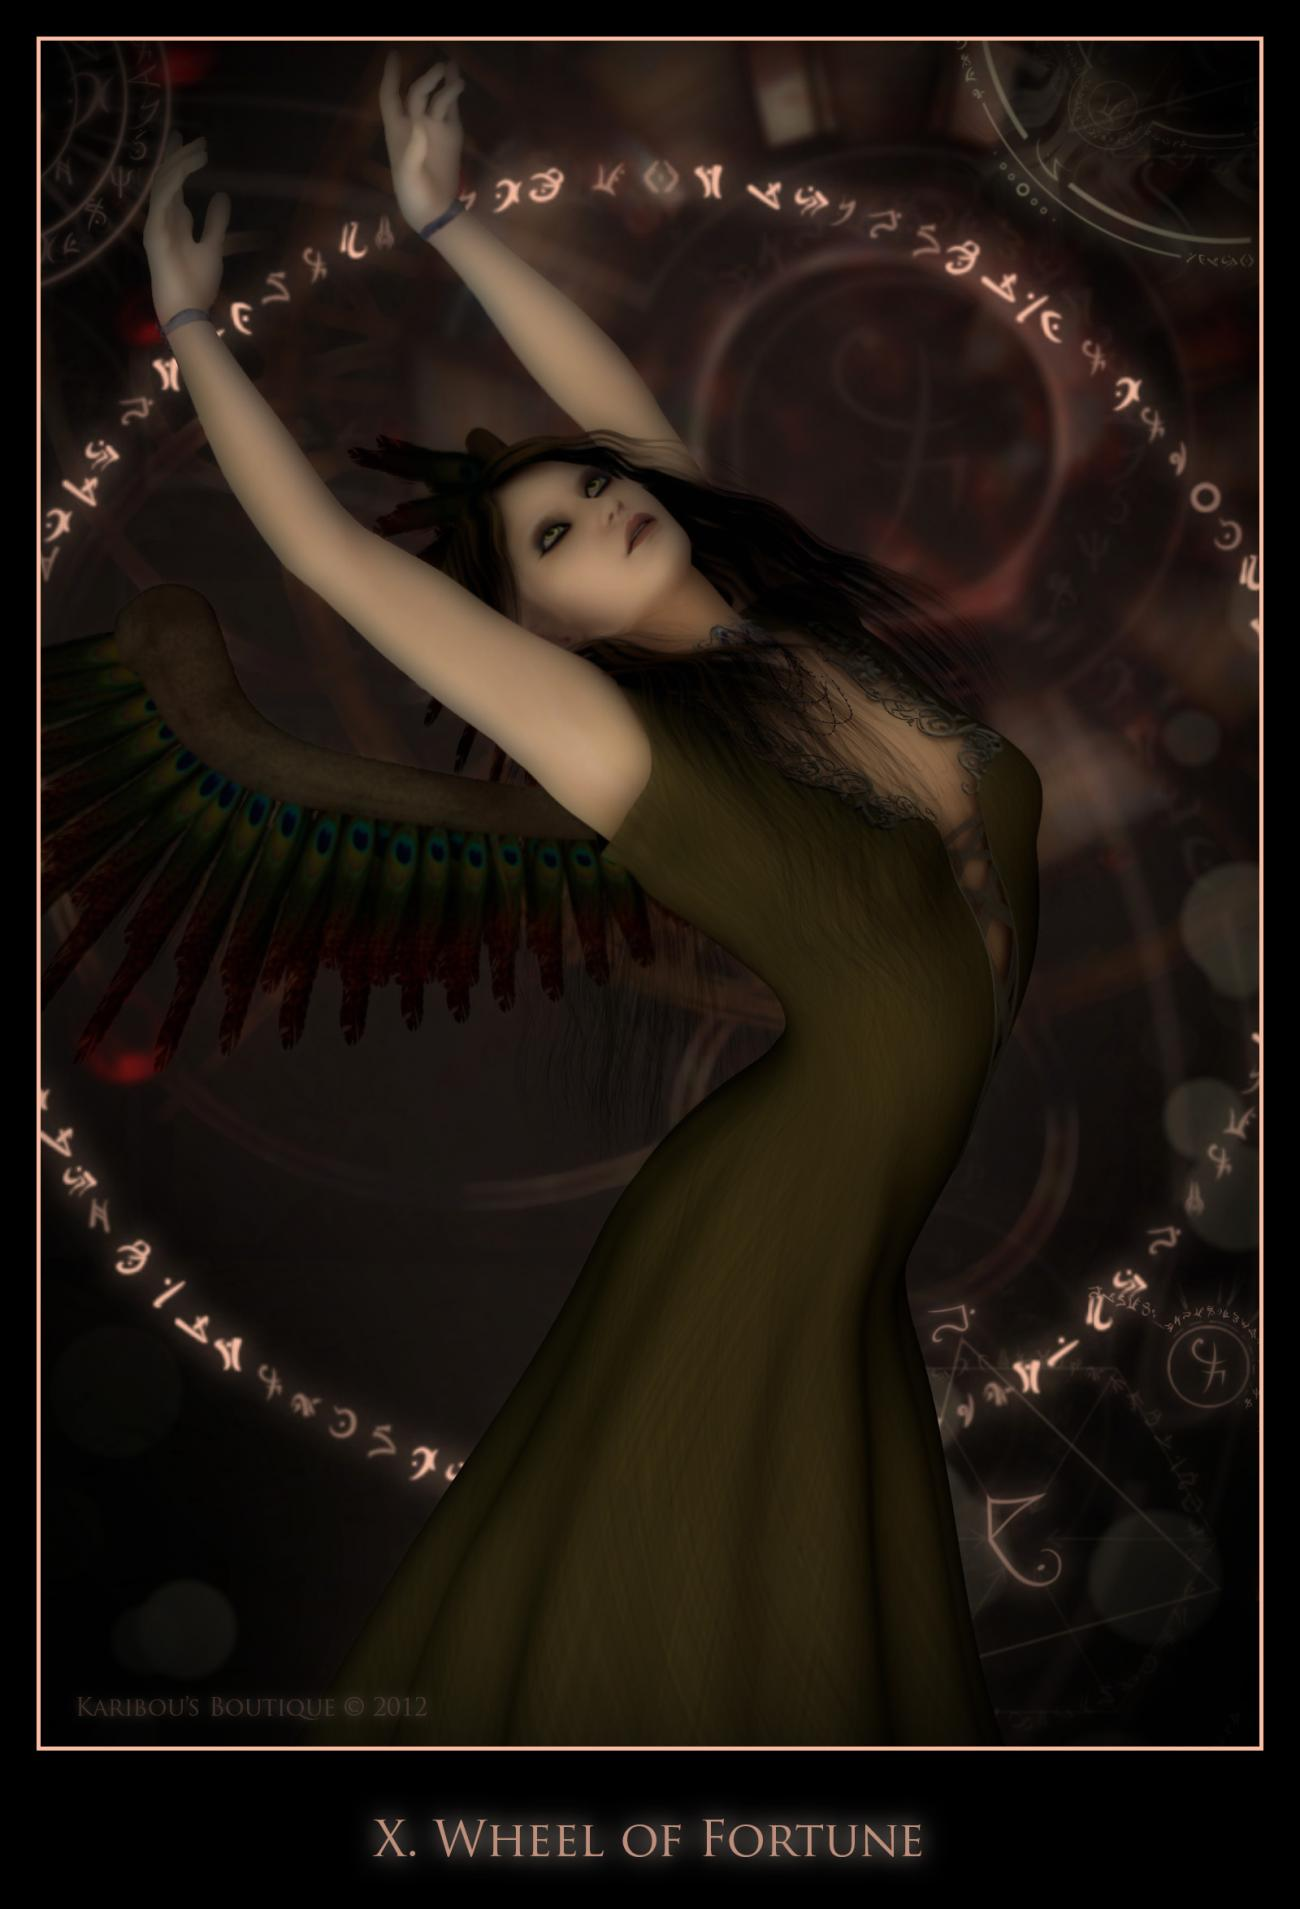 Wheel of Fortune by karibousboutique